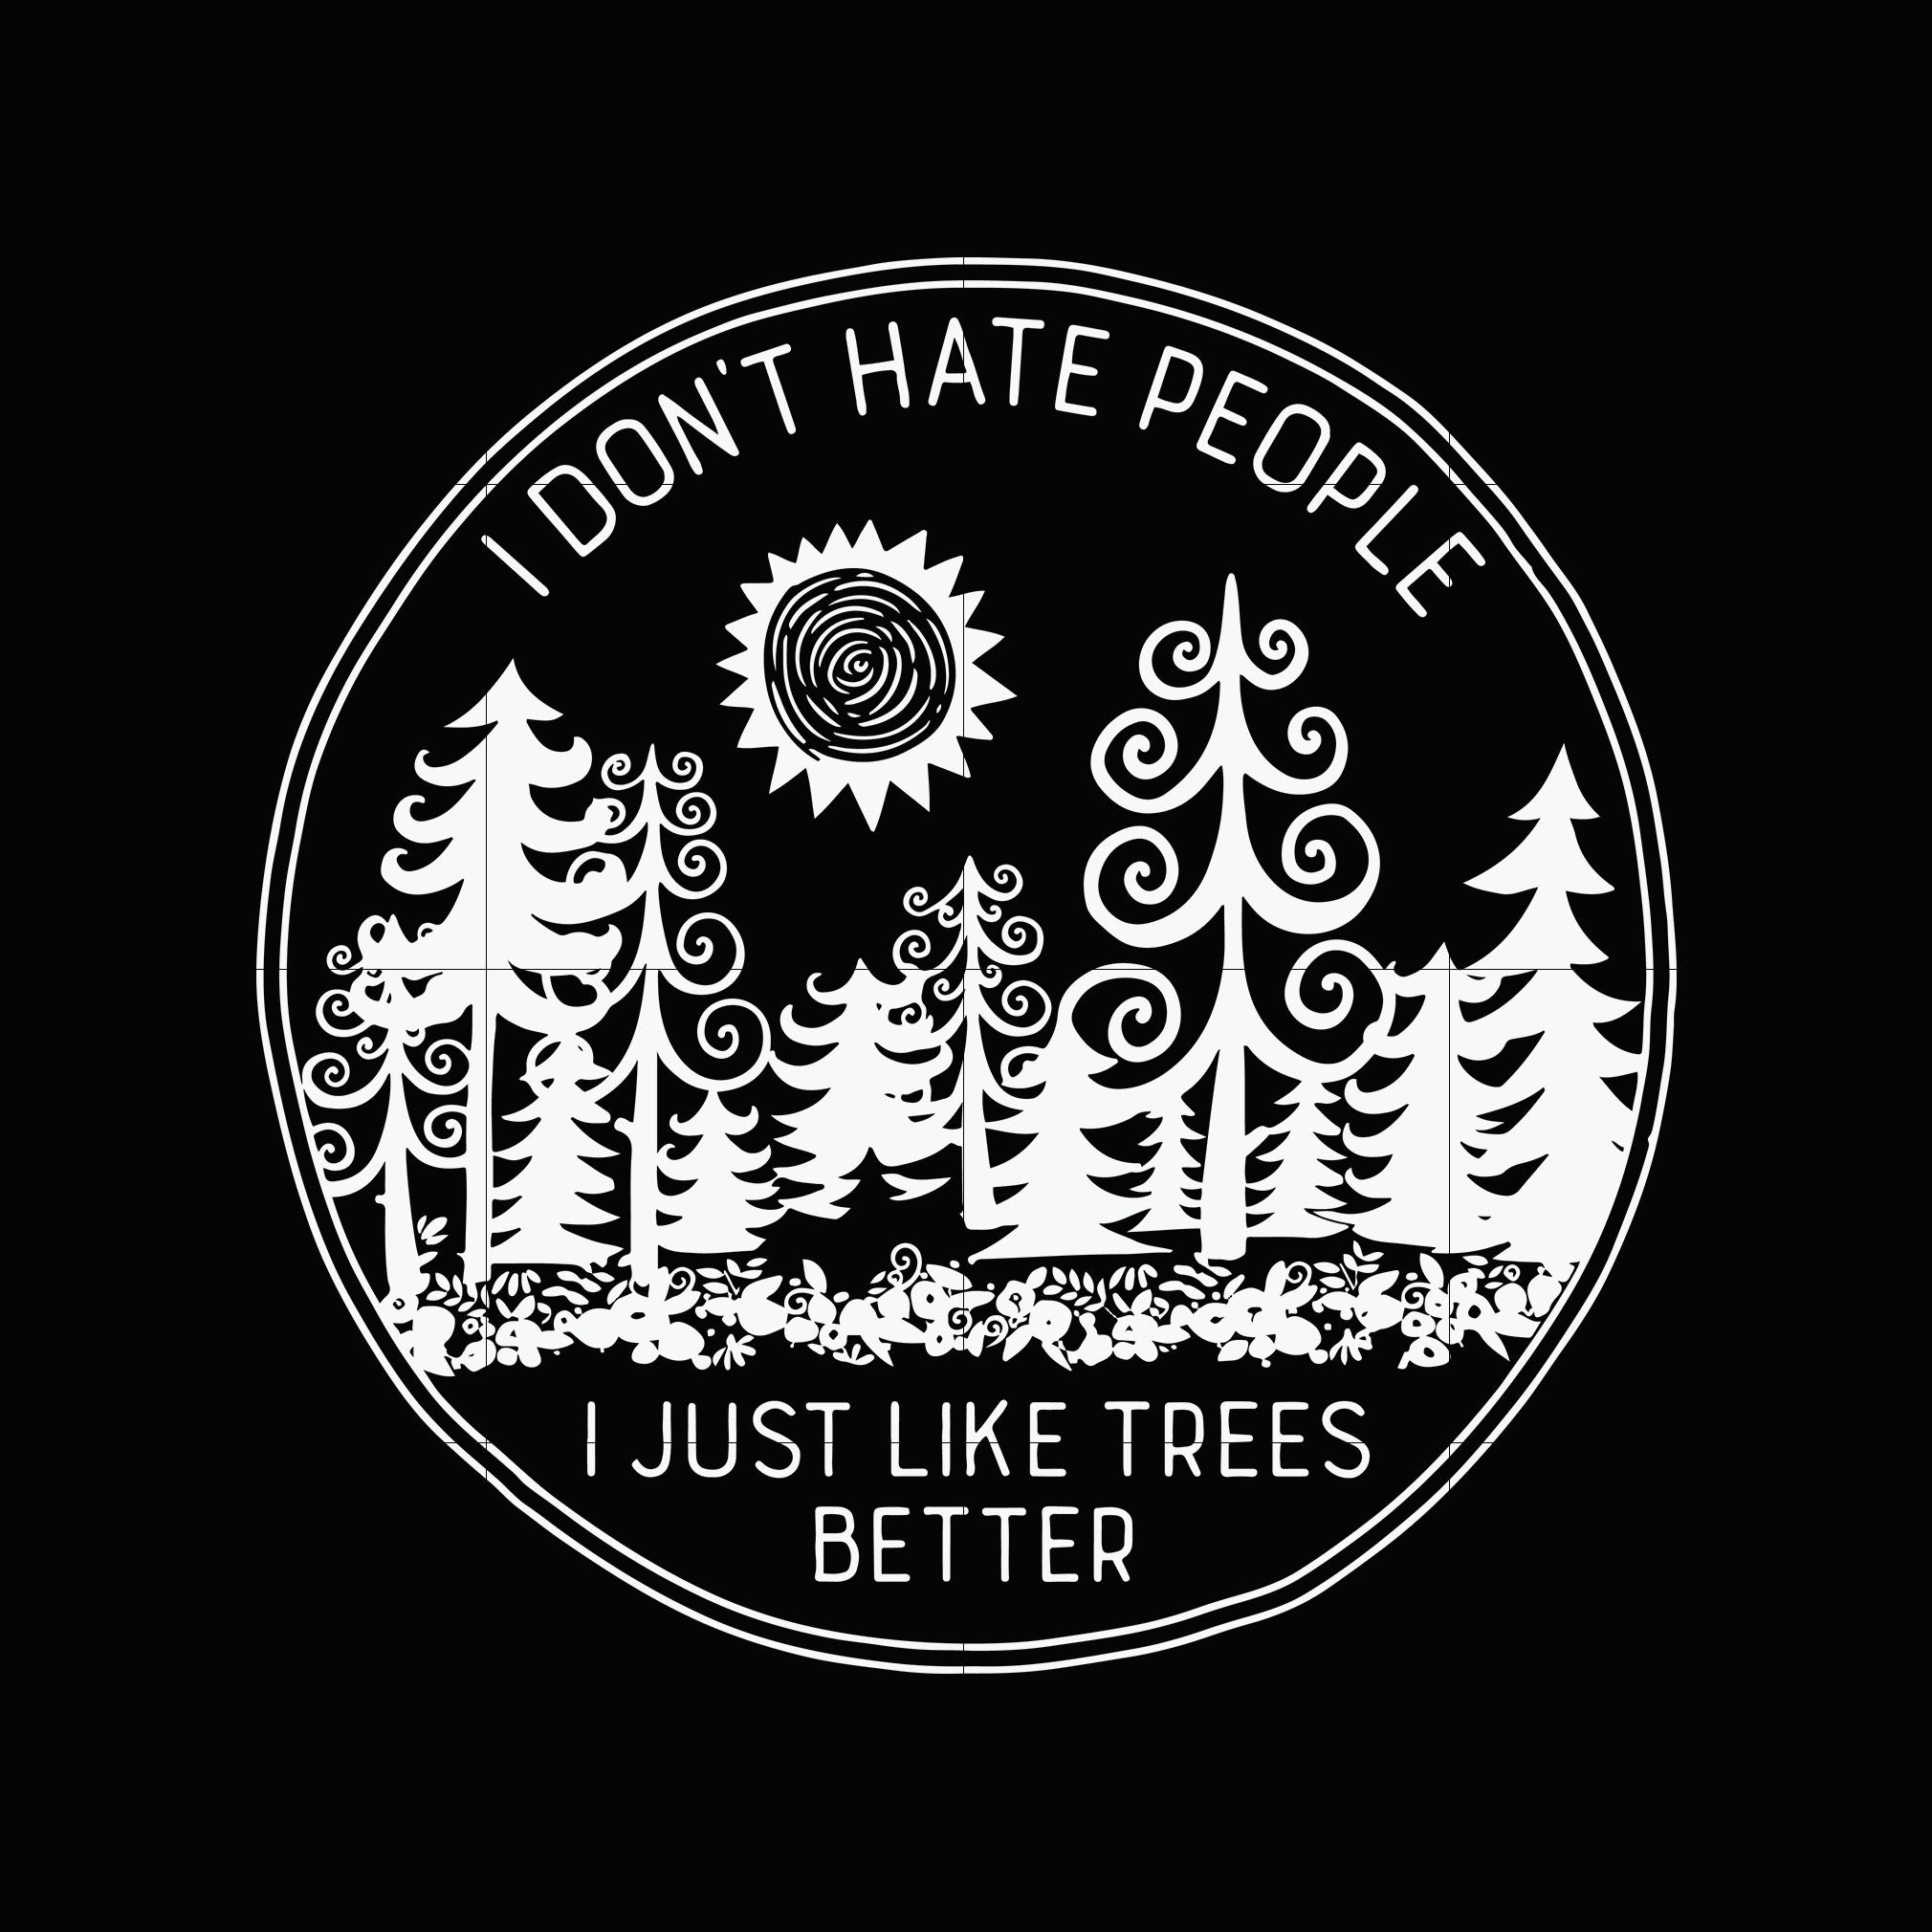 I don't hate people i just like trees better svg ,dxf,eps,png digital file